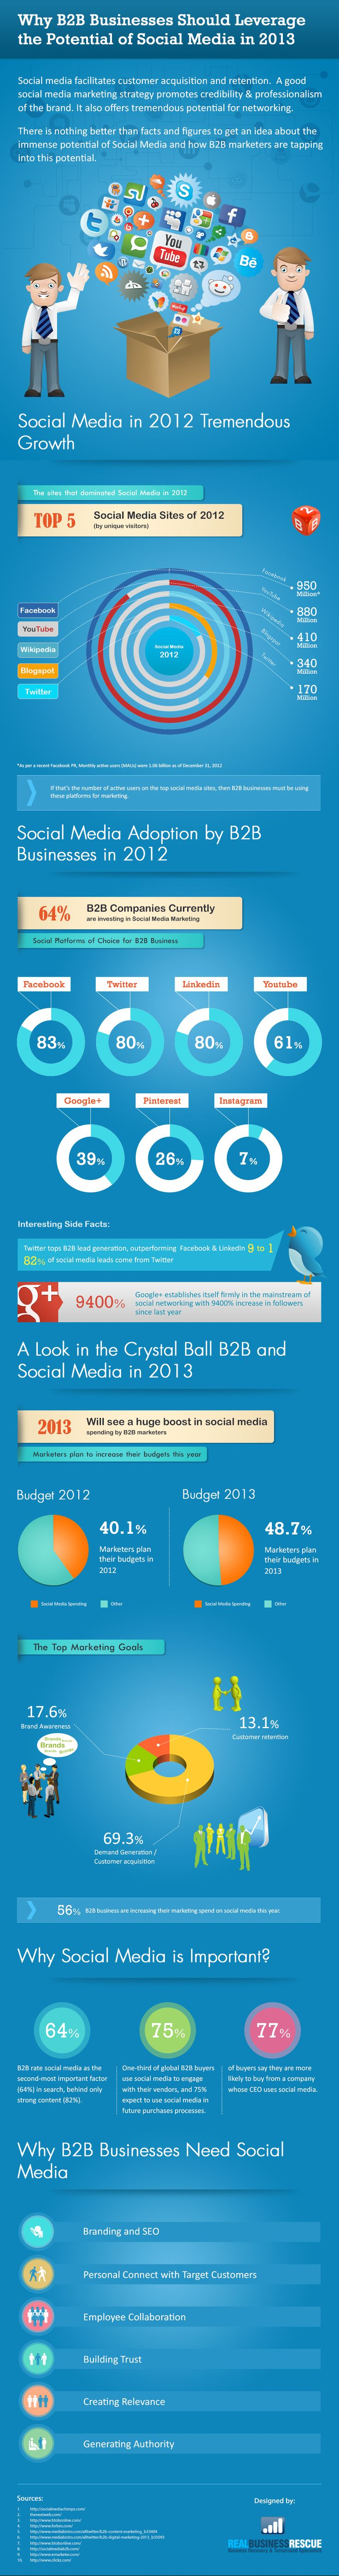 Why B2B Brands Must Invest In Social Media In 2013